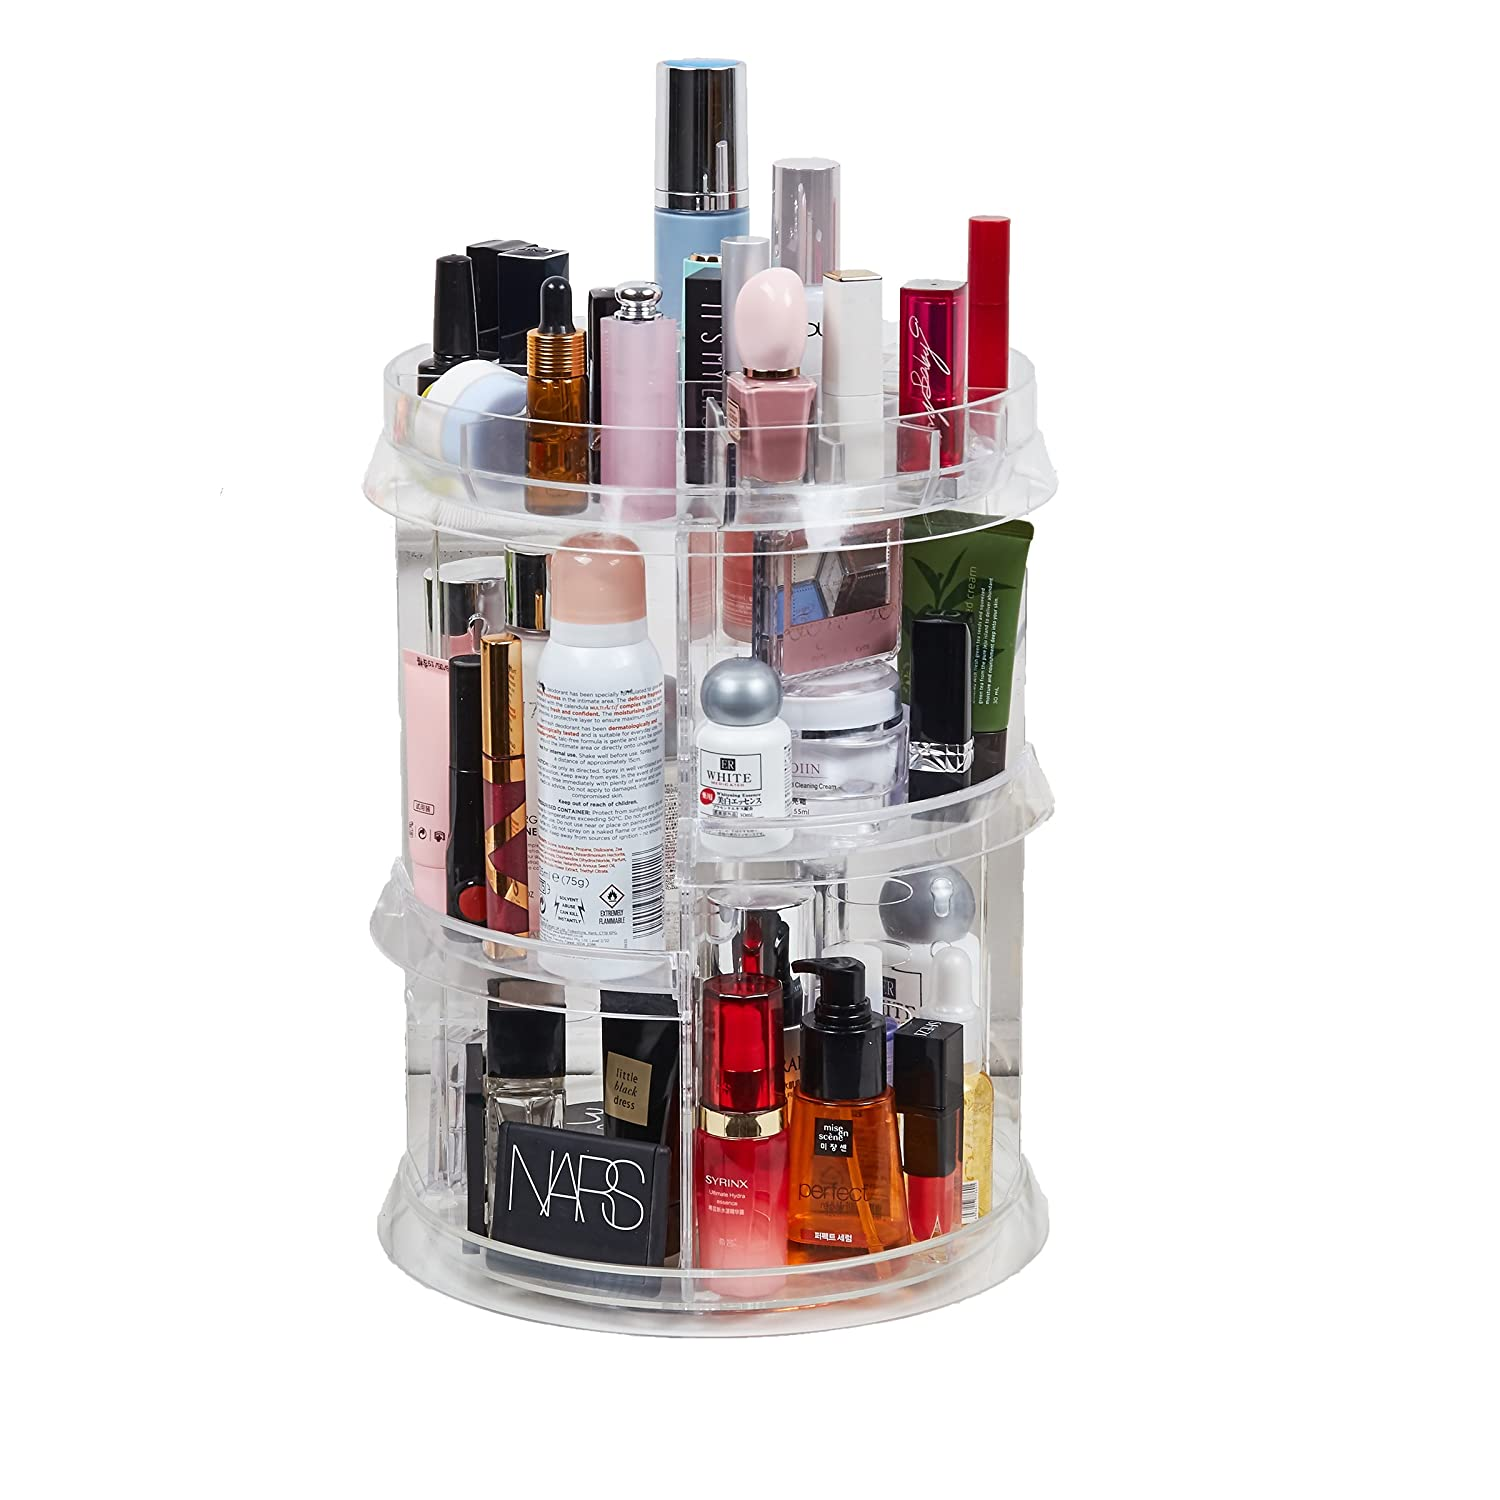 [Upgraded Design] 360 Degree Luxury Rotating Makeup/Perfume Organizer Storage Carousel-Adjustable Layers, Fits Different Containers, for vanity table, dresser, bedroom, bathroom and all! CloverIsland